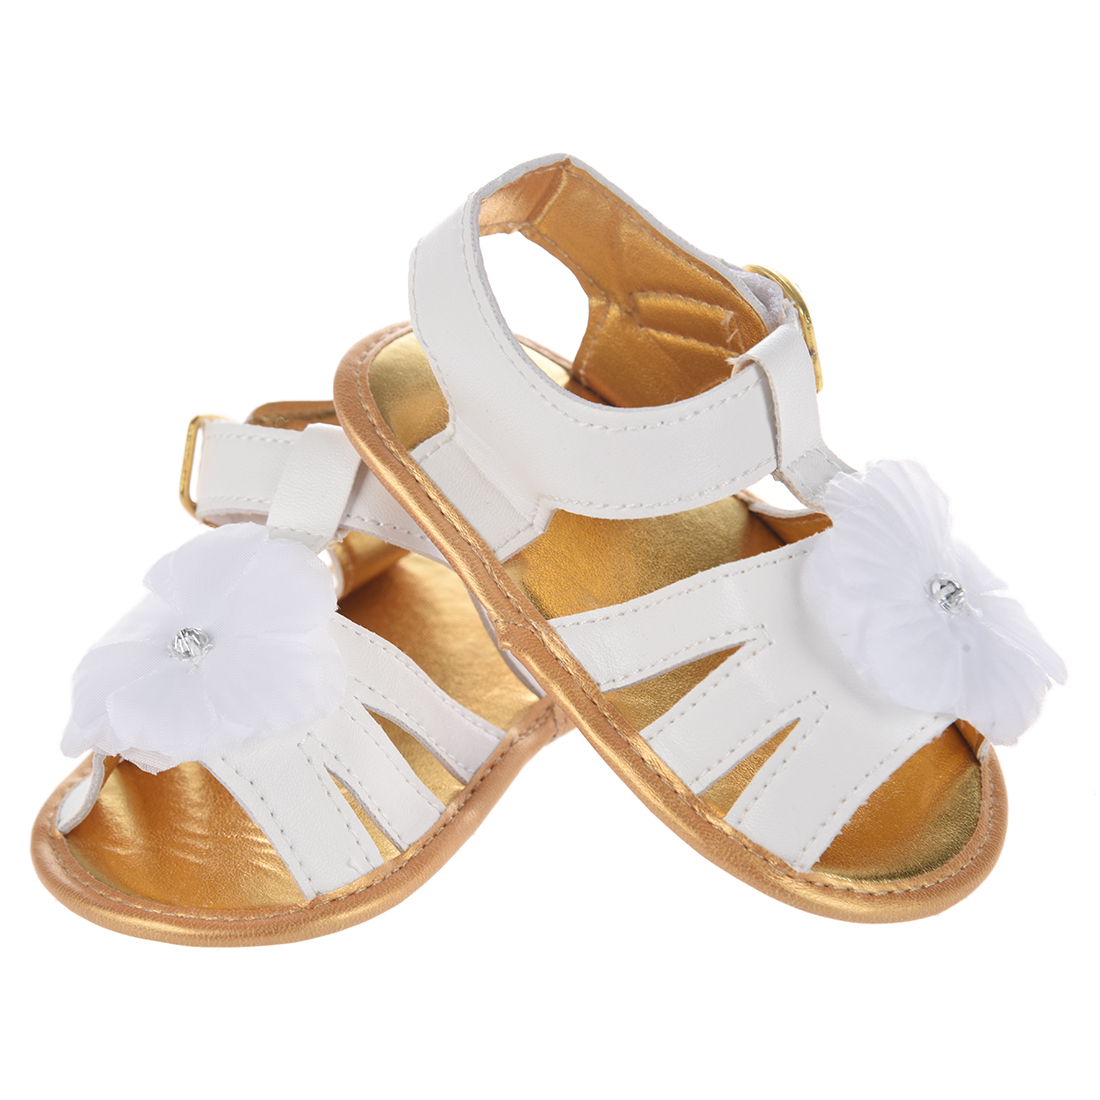 Sandals & Clogs Baby Girls Shoes Sandals Led Light Glowing Princess Beautiful Flower Children Shoes Soft Sole Newborn Toddler Shoes 9month-6y Mother & Kids